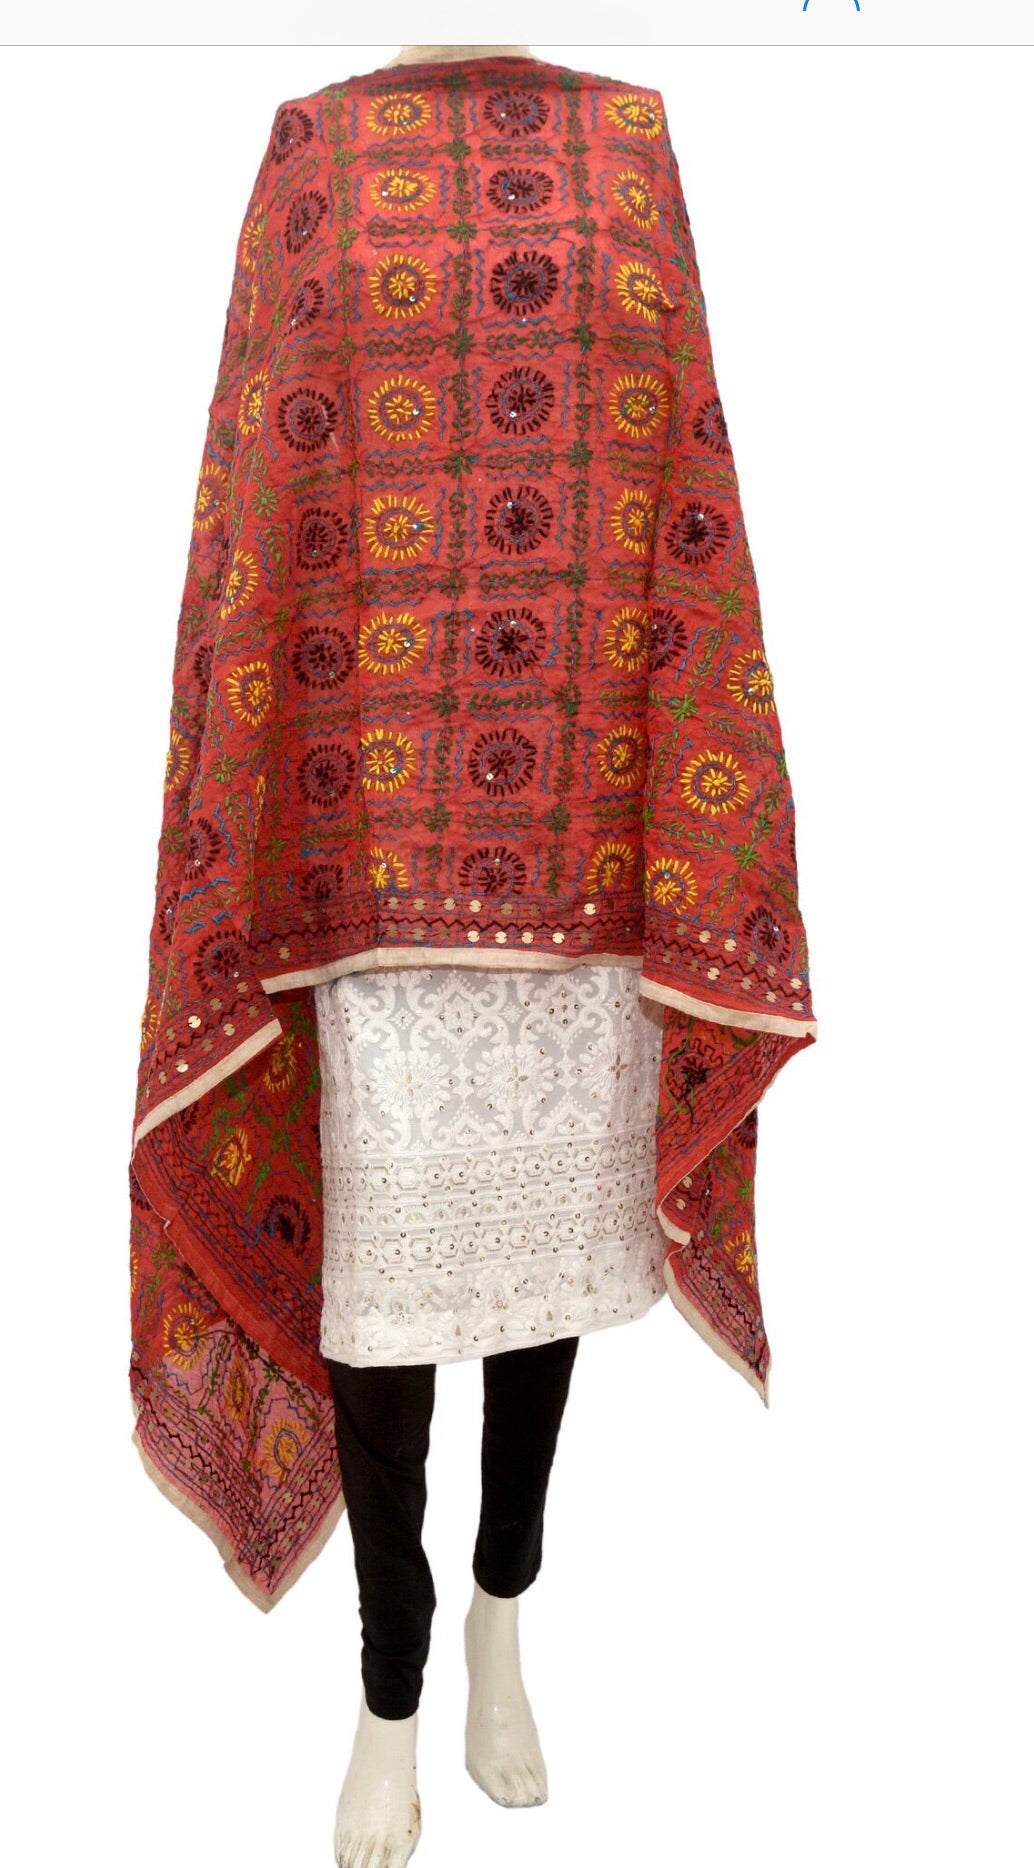 Embroidered dupatta #fdn912-141